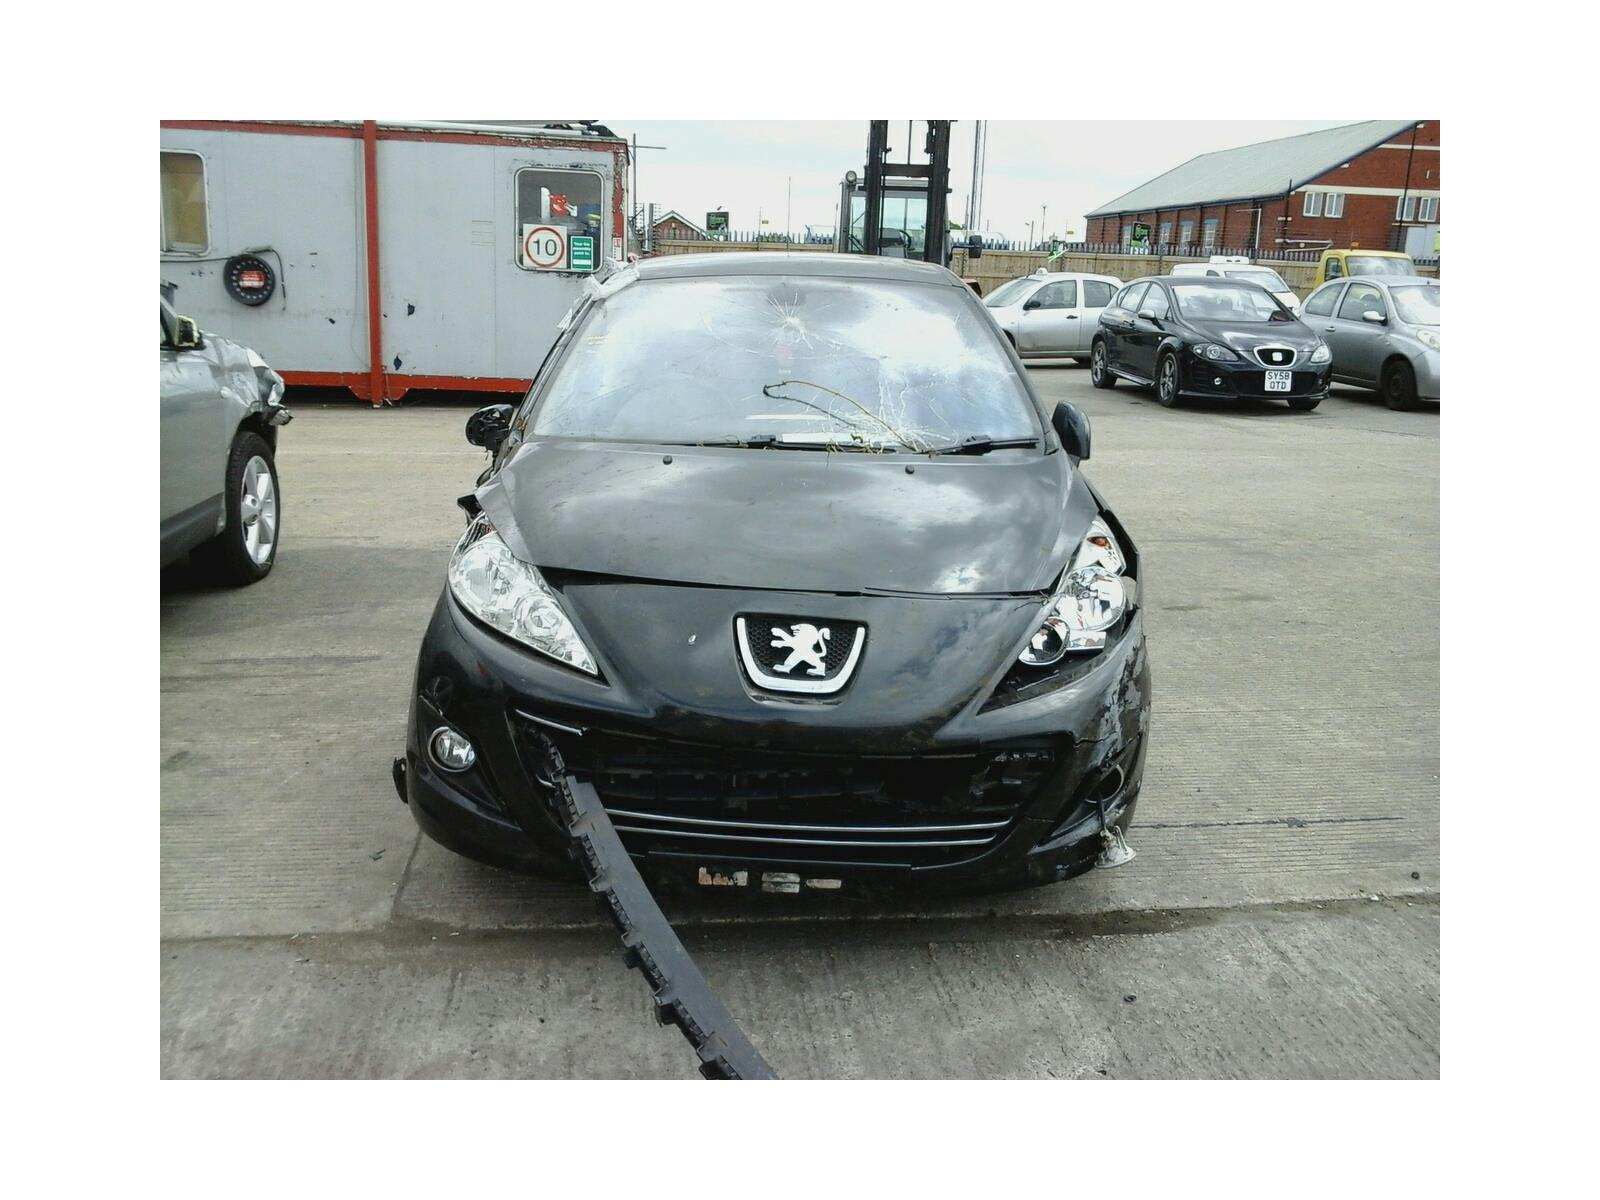 Peugeot 207 2009 On Fuse Box Petrol Manual For Sale From 206 Fuel Pump Location